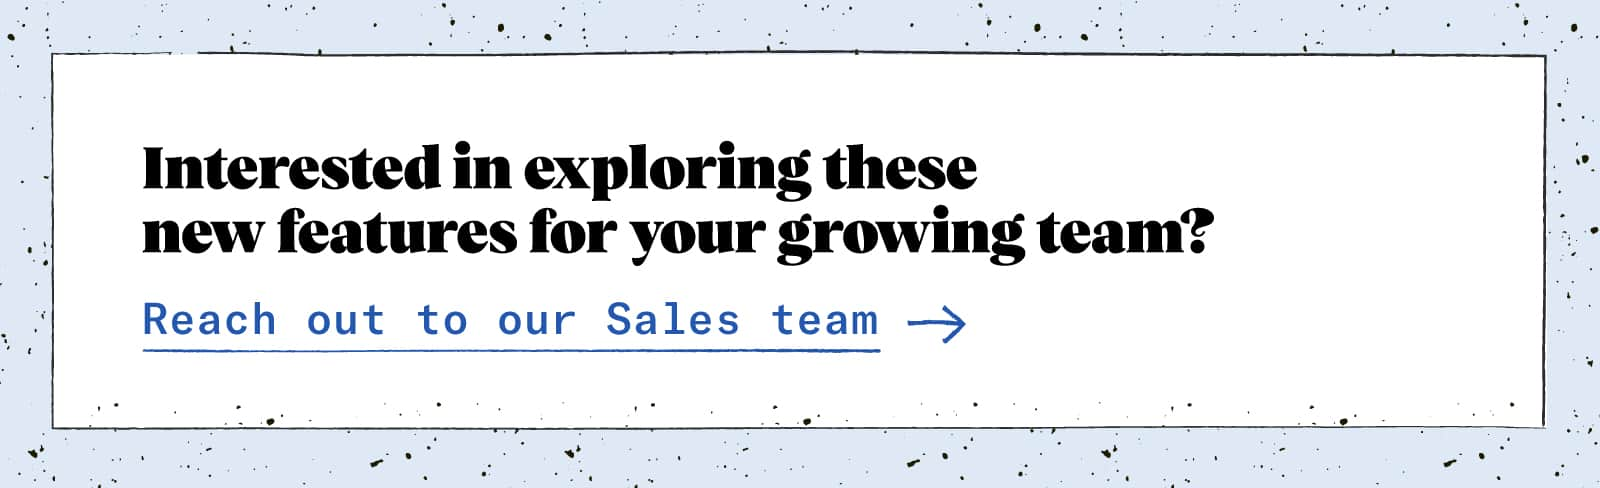 Interested in exploring these new featured for your growing team? Reach out to our sales team!